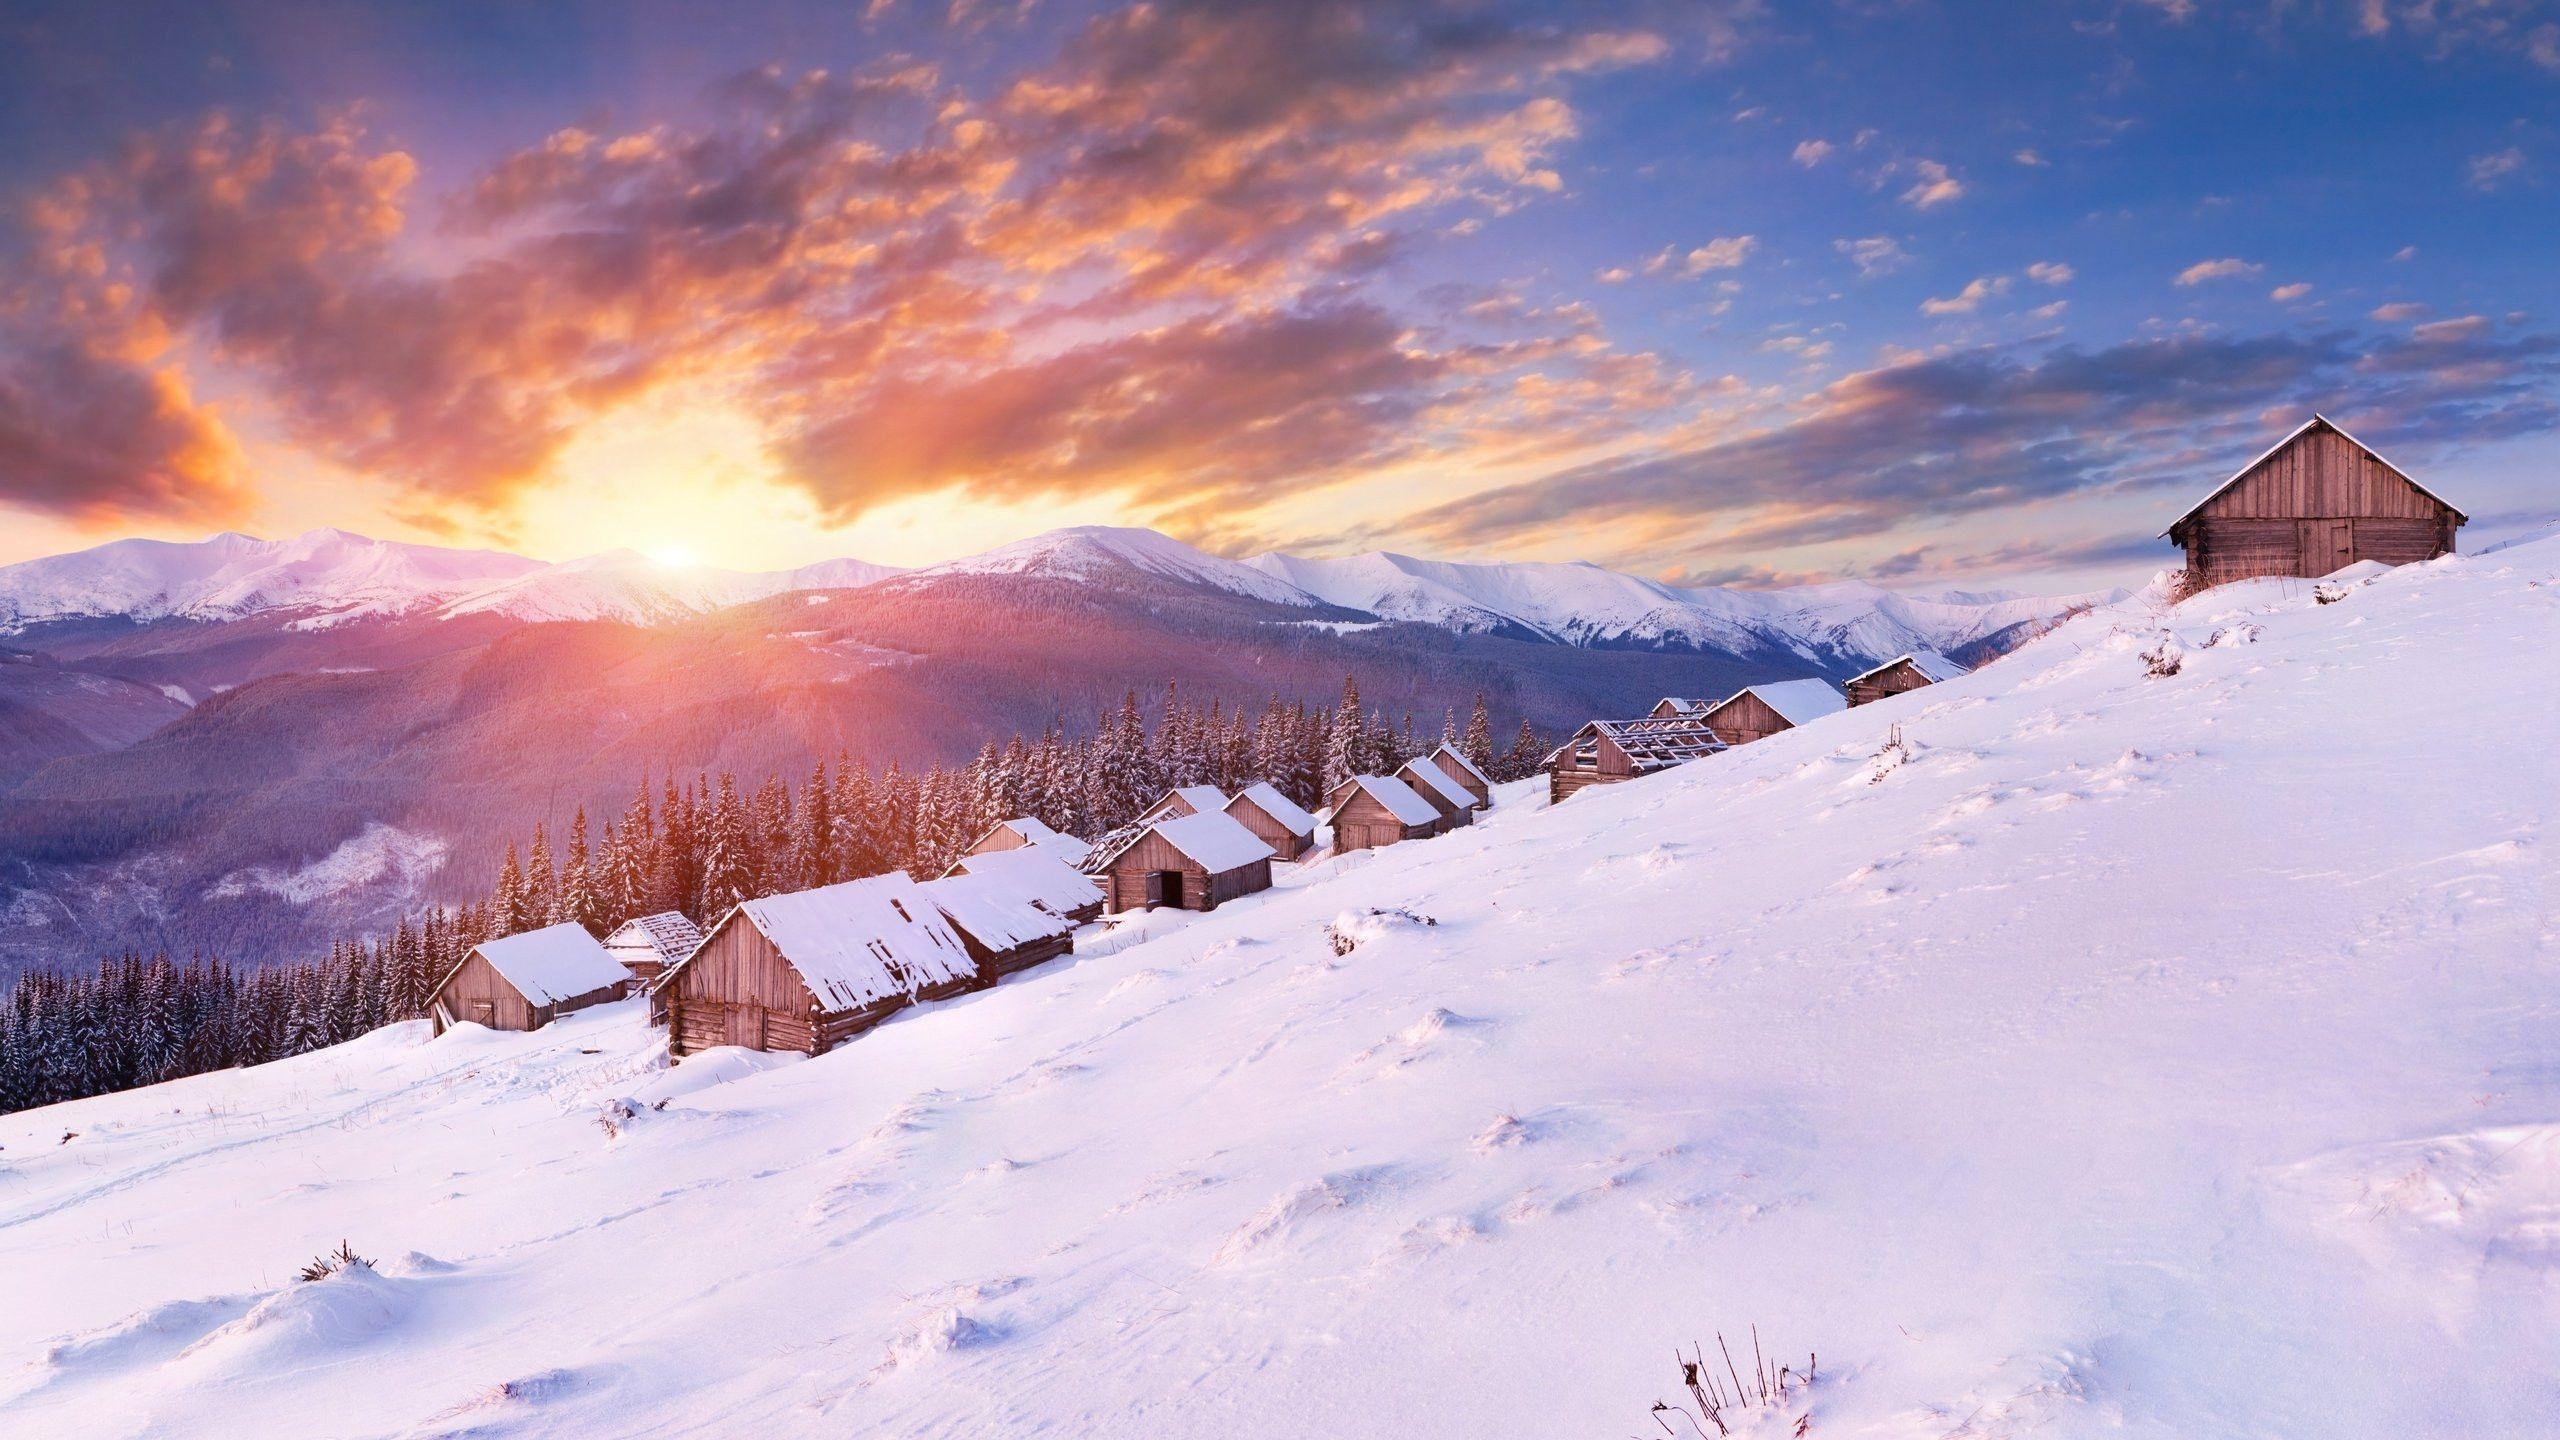 Winter Sunset Wallpapers - Wallpaper Cave